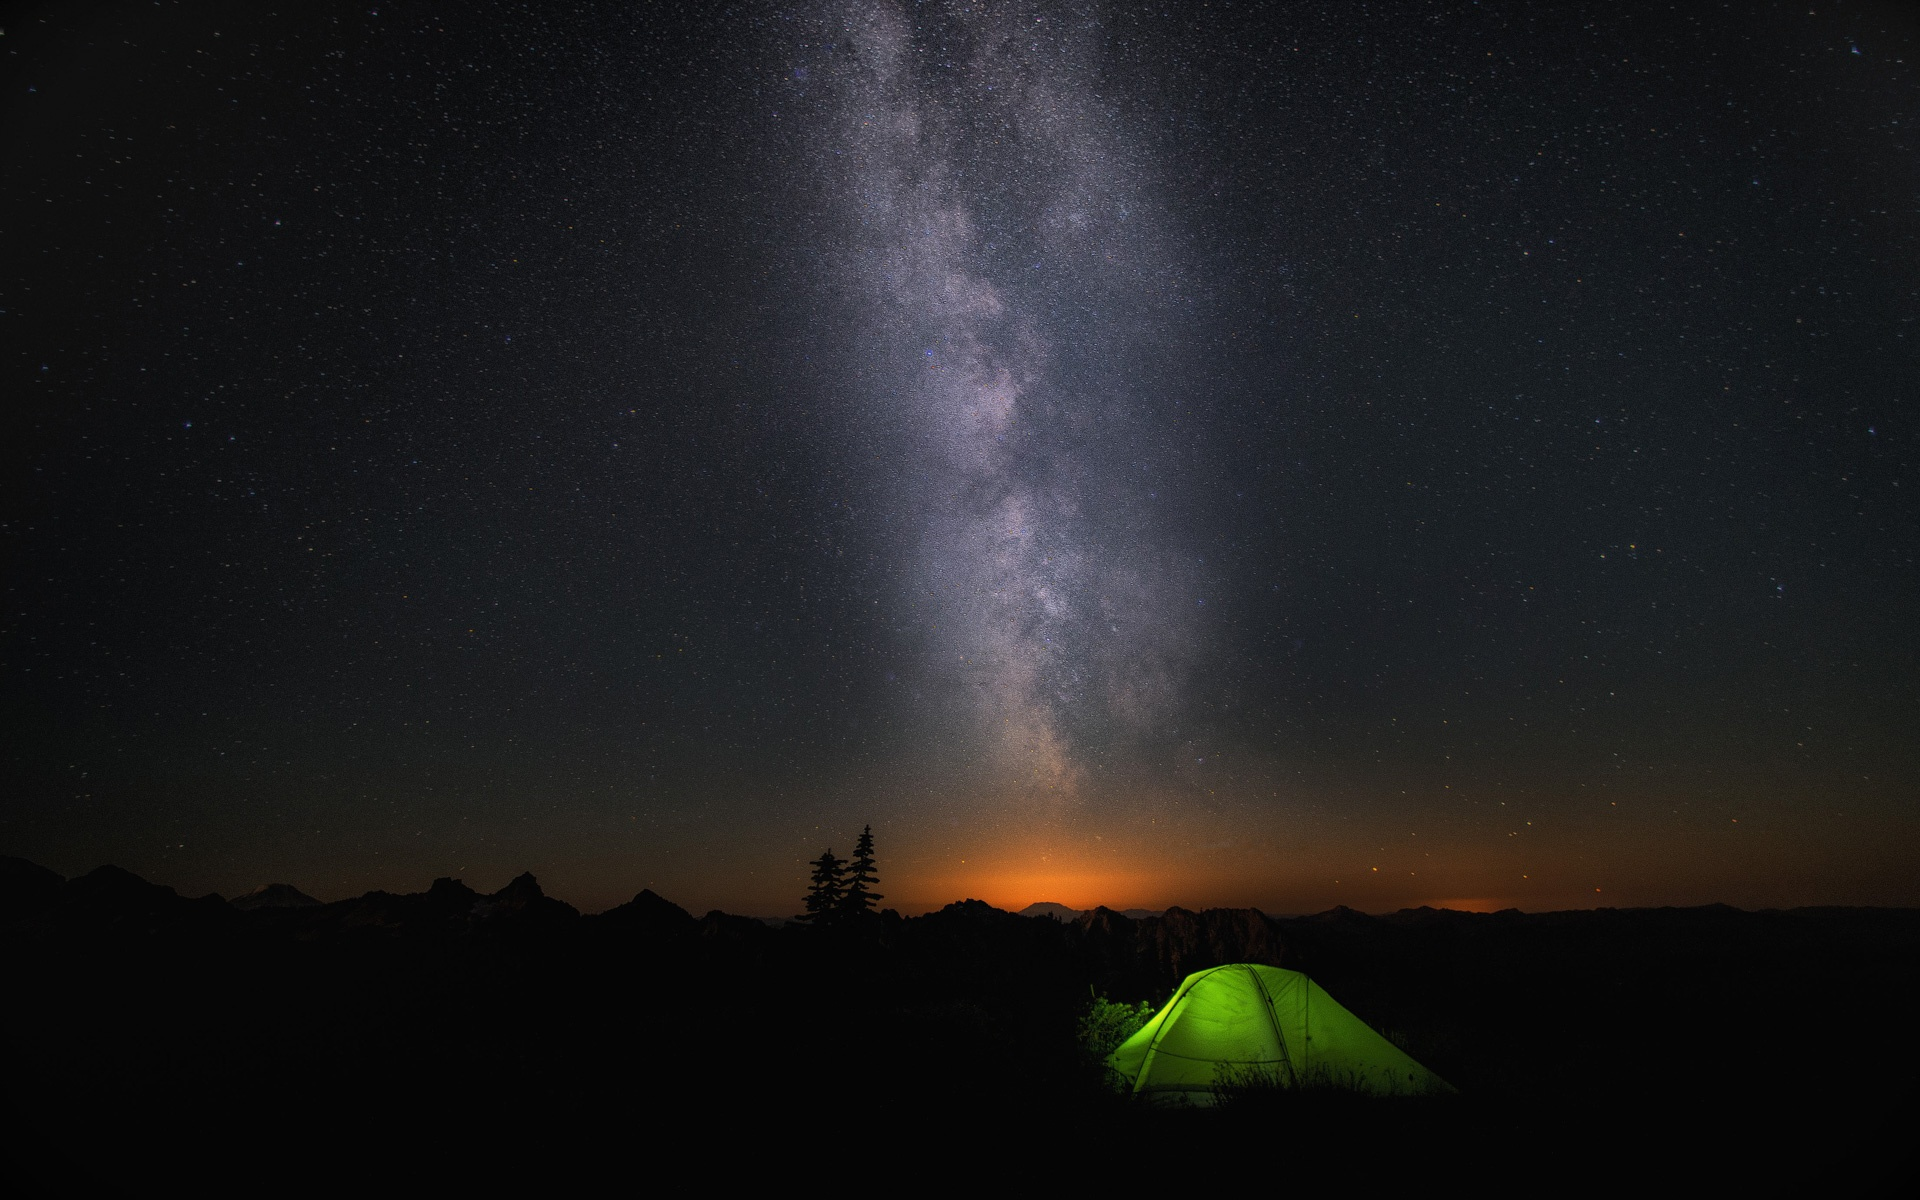 Night Camp Sky Stars Wallpapers in jpg format for download 1920x1200